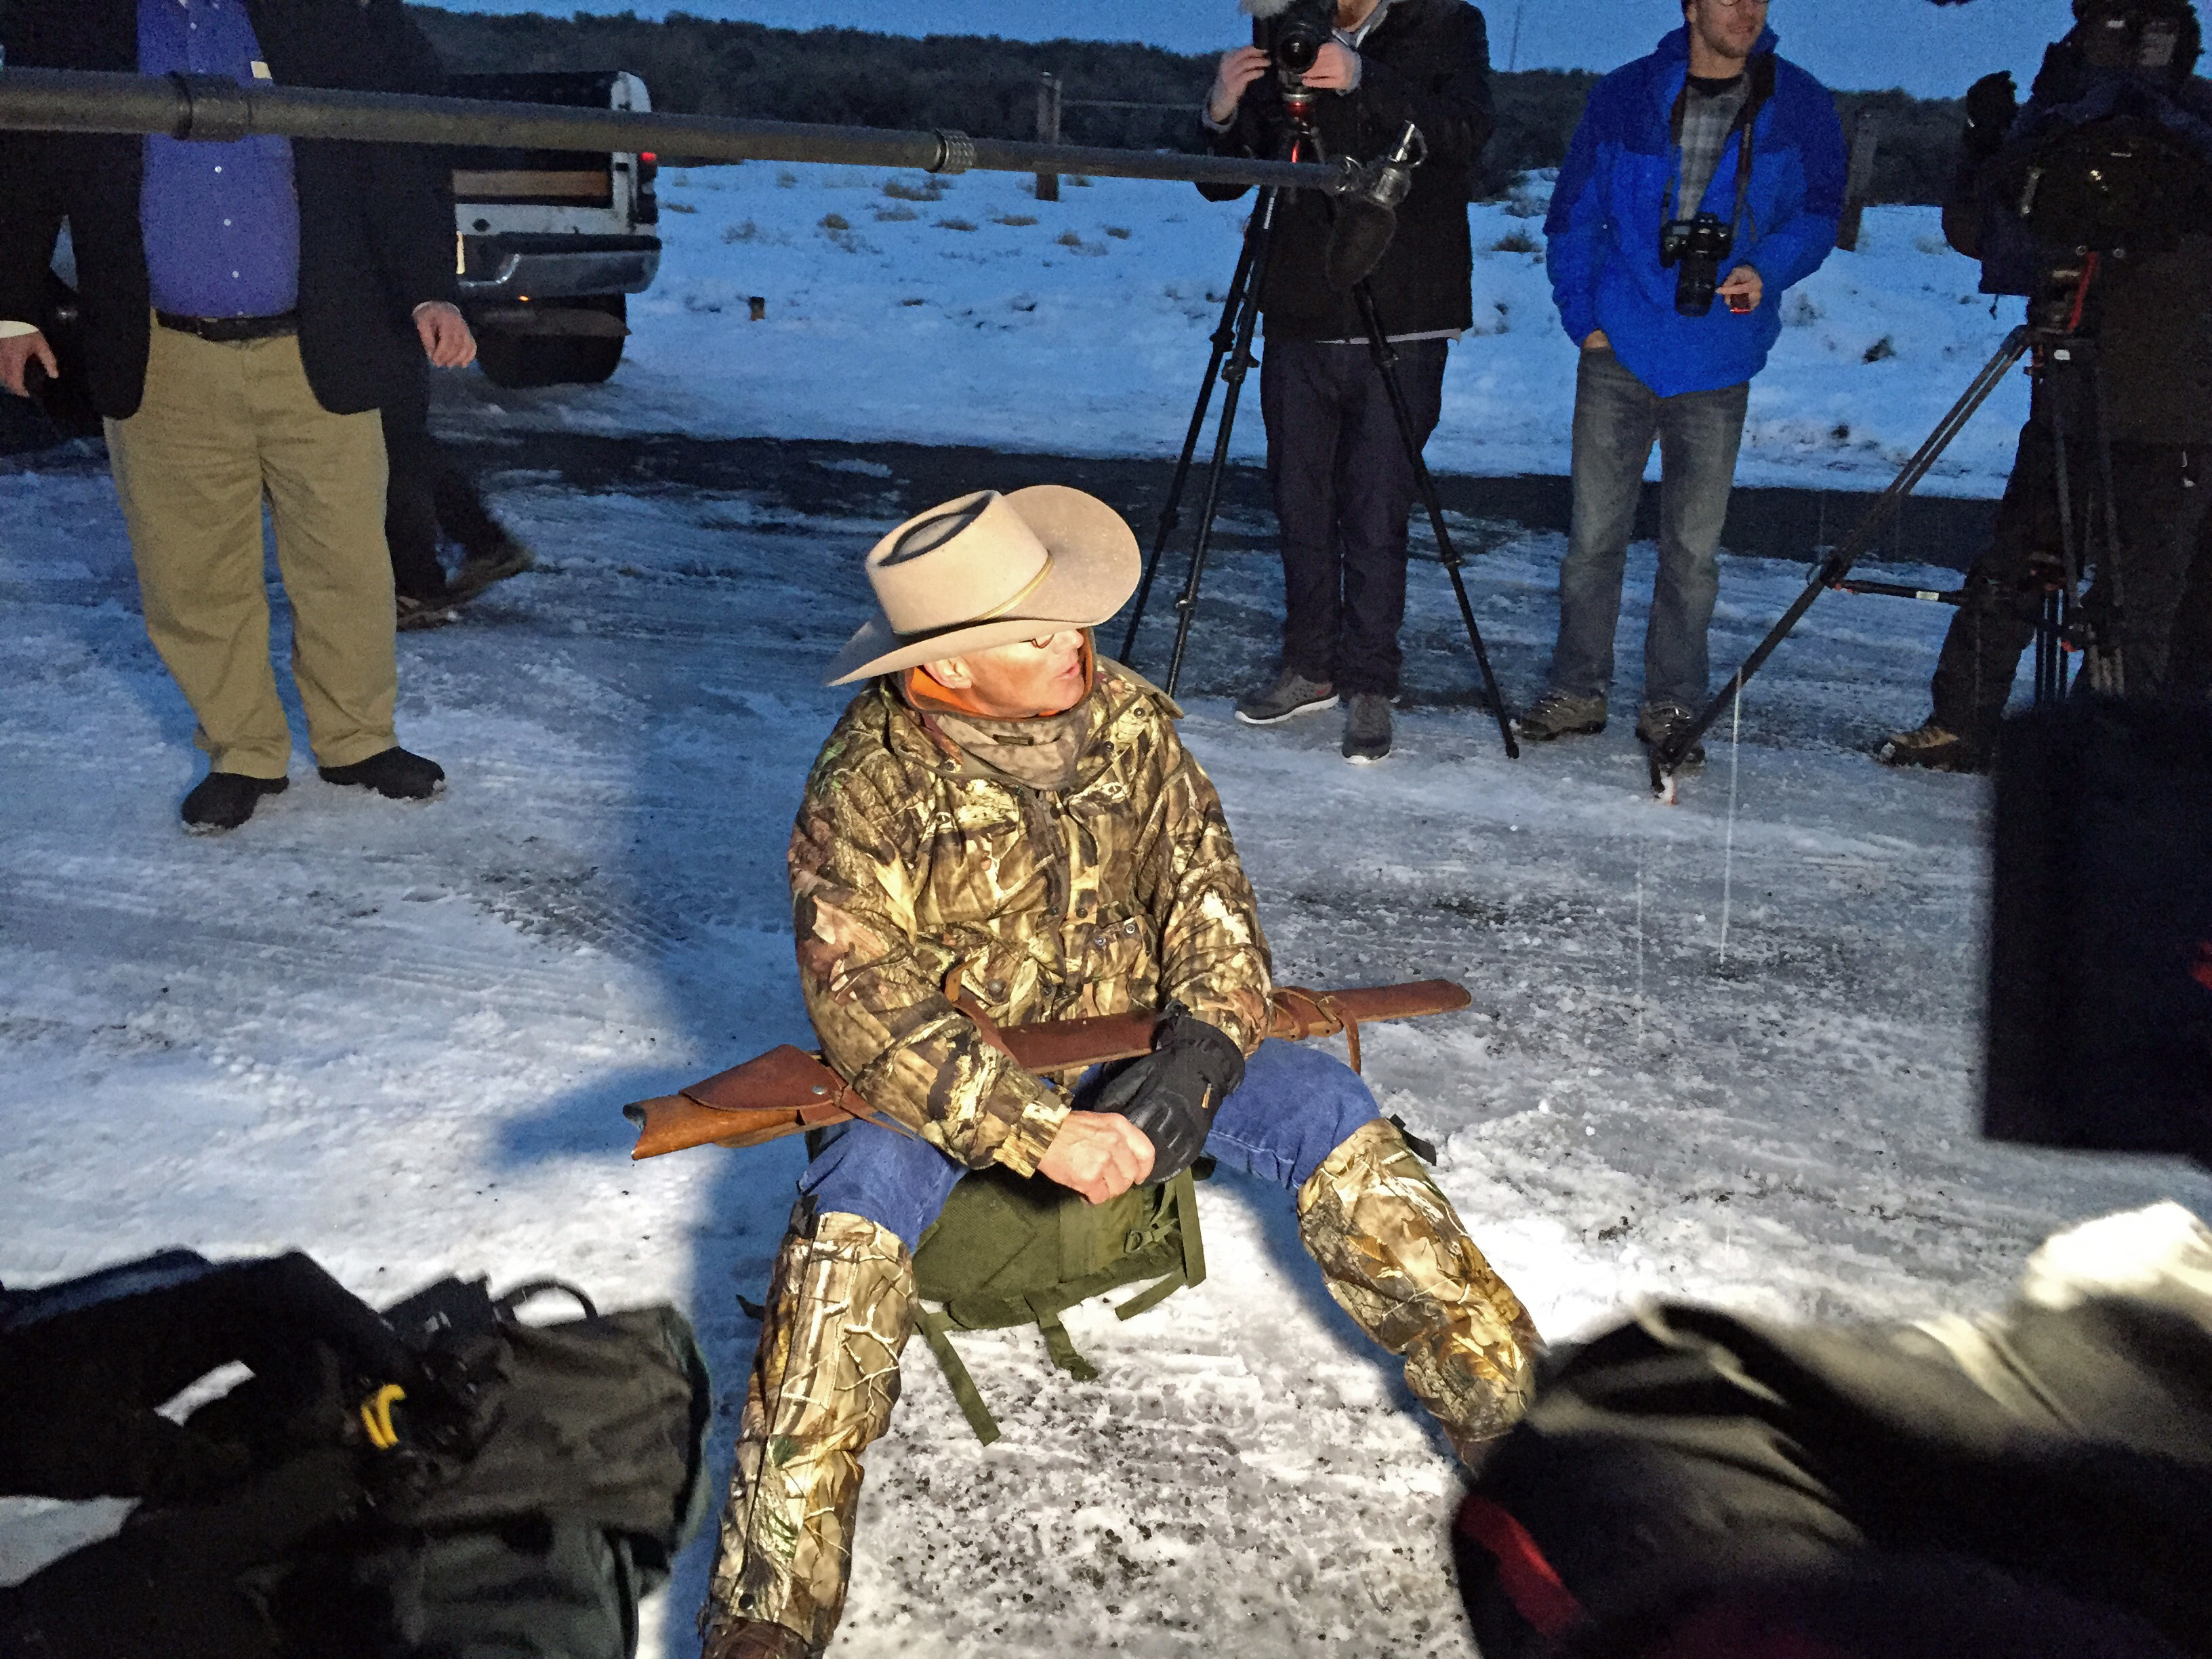 Arizona rancher LaVoy Finicum, holding rifle, speaks to reporters at the Malheur National Wildlife Refuge, Tuesday, Jan. 5, 2016, near Burns, Ore. Ammon Bundy, the leader of a small, armed group that is occupying a remote national wildlife preserve in Oregon said Tuesday that they will go home when a plan is in place to turn over management of federal lands to locals. (AP Photo/Rebecca Boone)